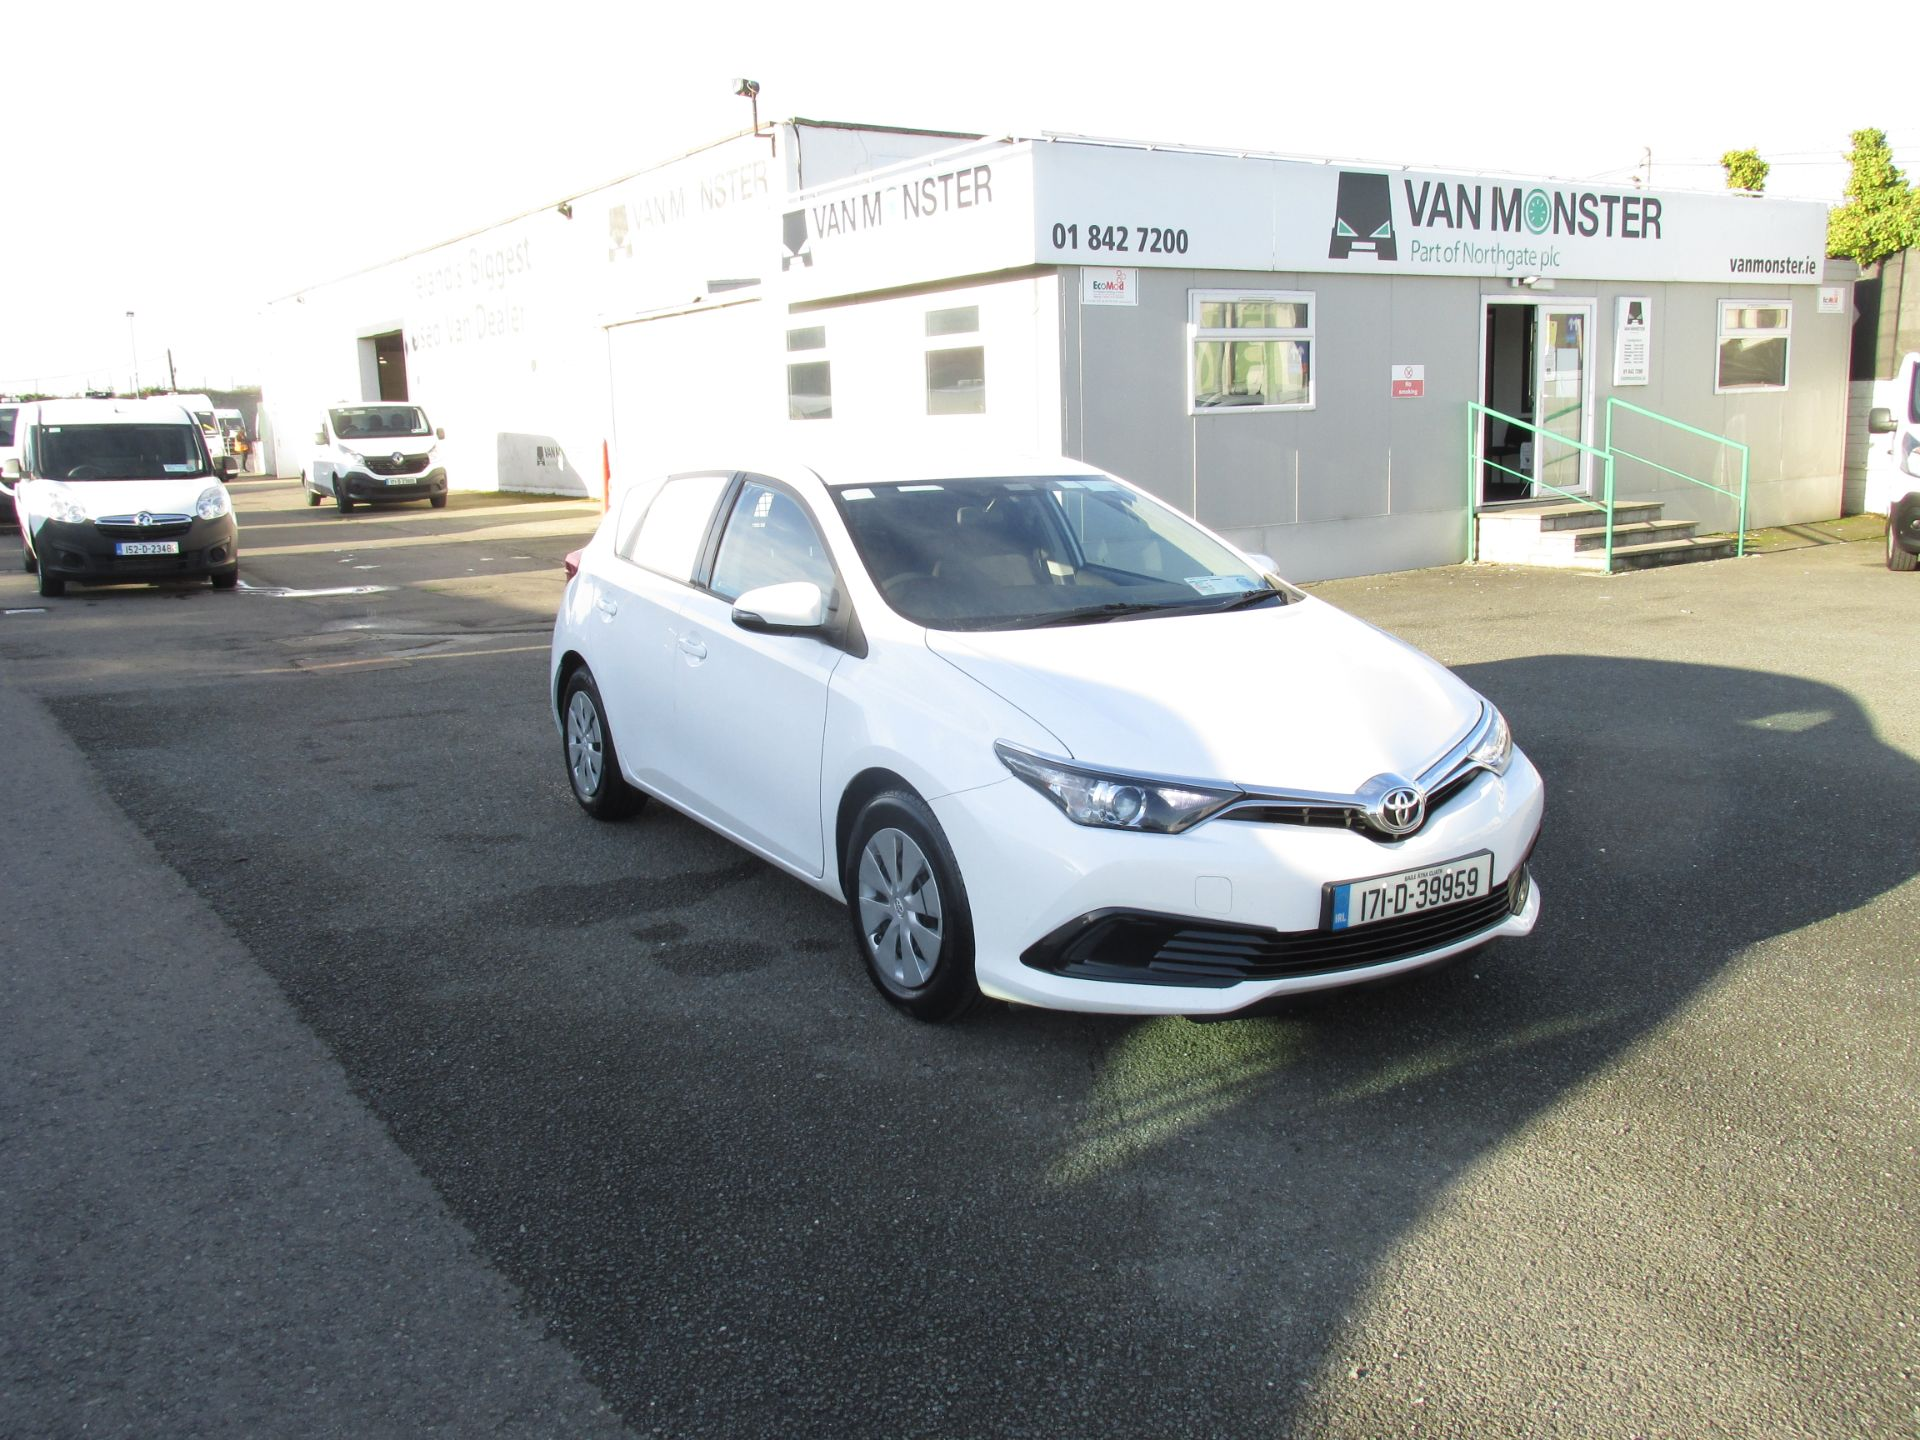 2017 Toyota Auris VAN 1.4 D4D Terra 4DR click and collect call sales for more info (171D39959) Image 1